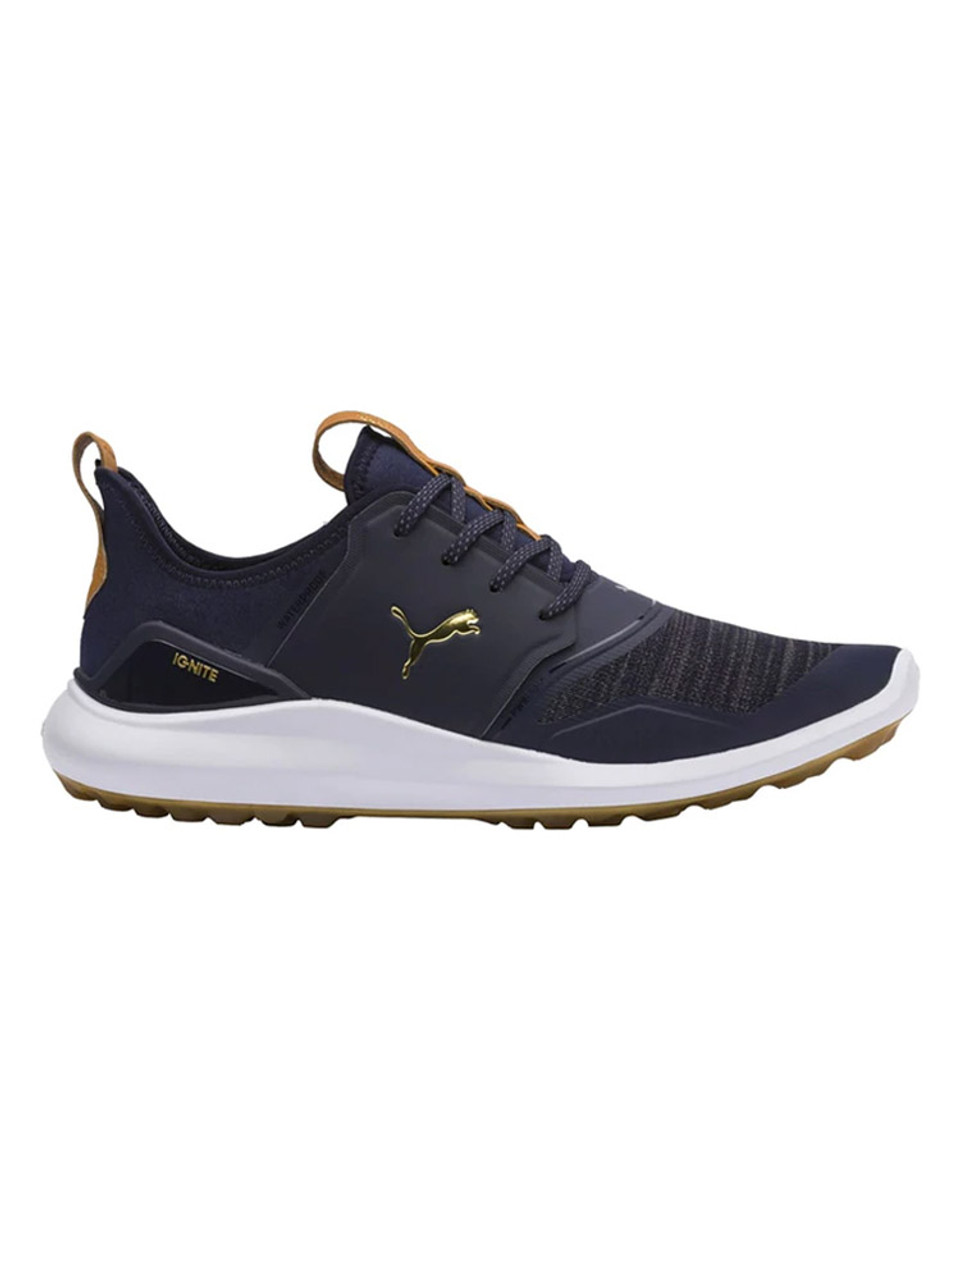 Puma Ignite NXT Golf Shoes Peacoat